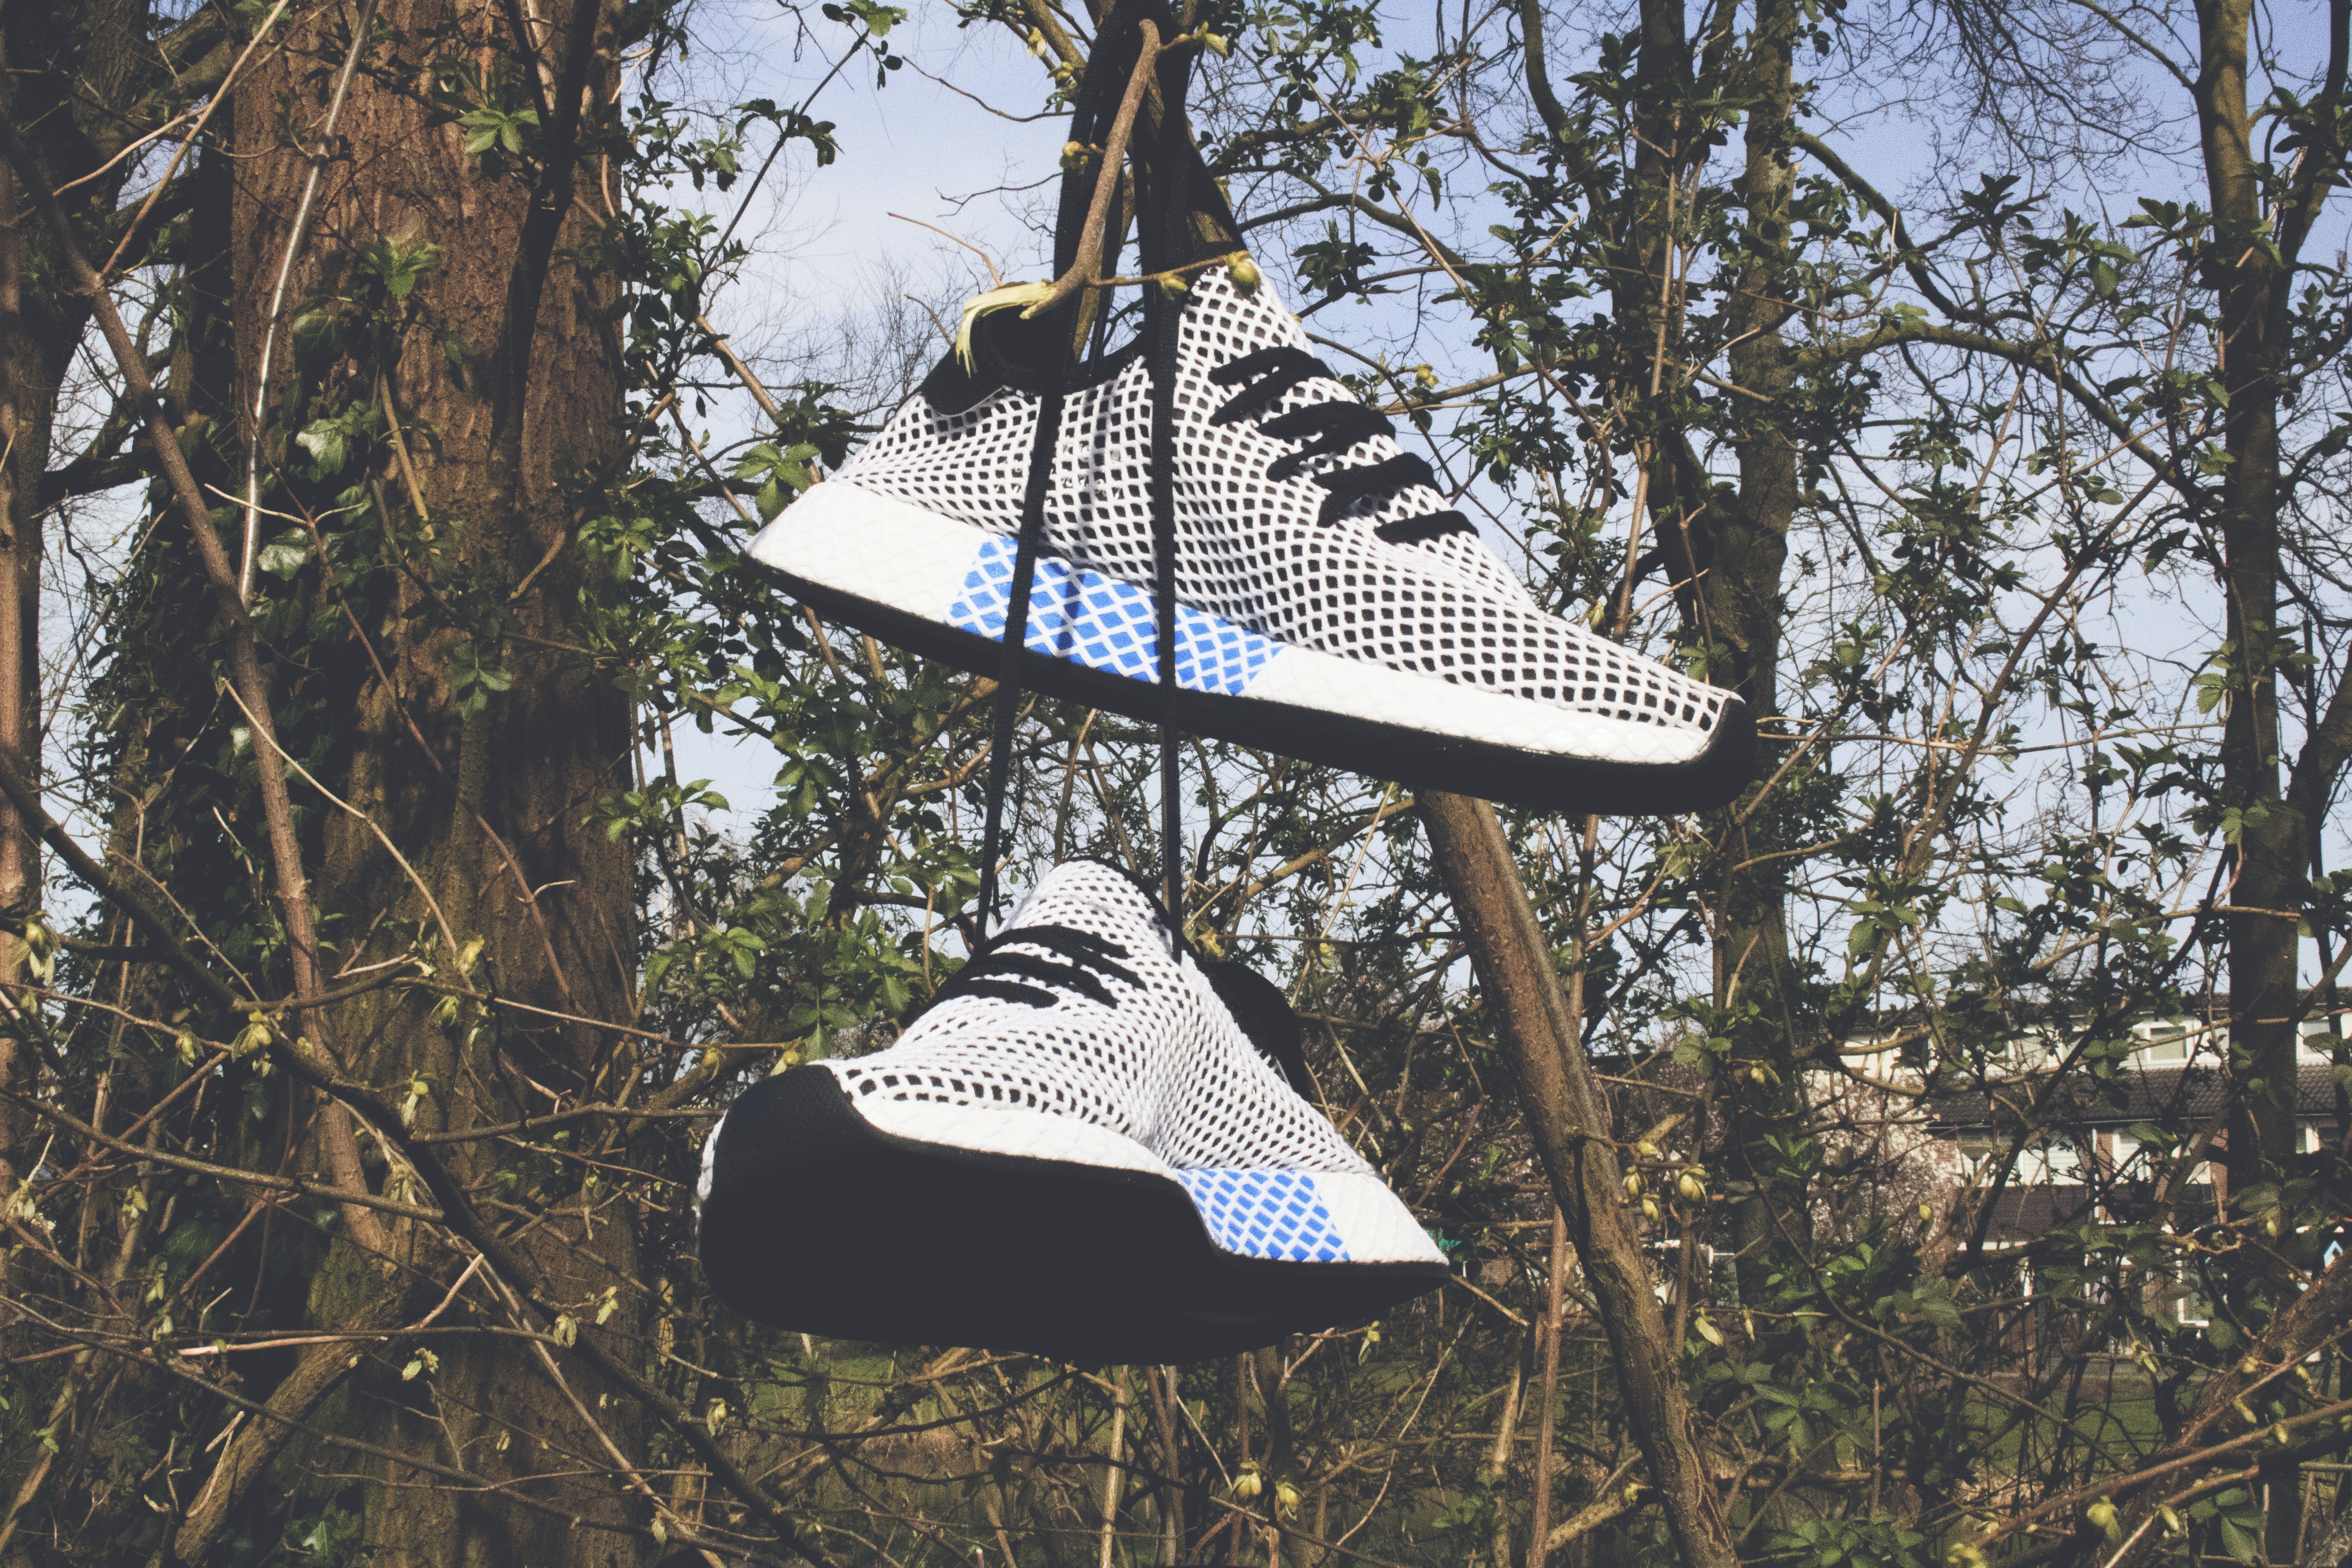 Pair of White Low-top Shoes Hanging on Tree